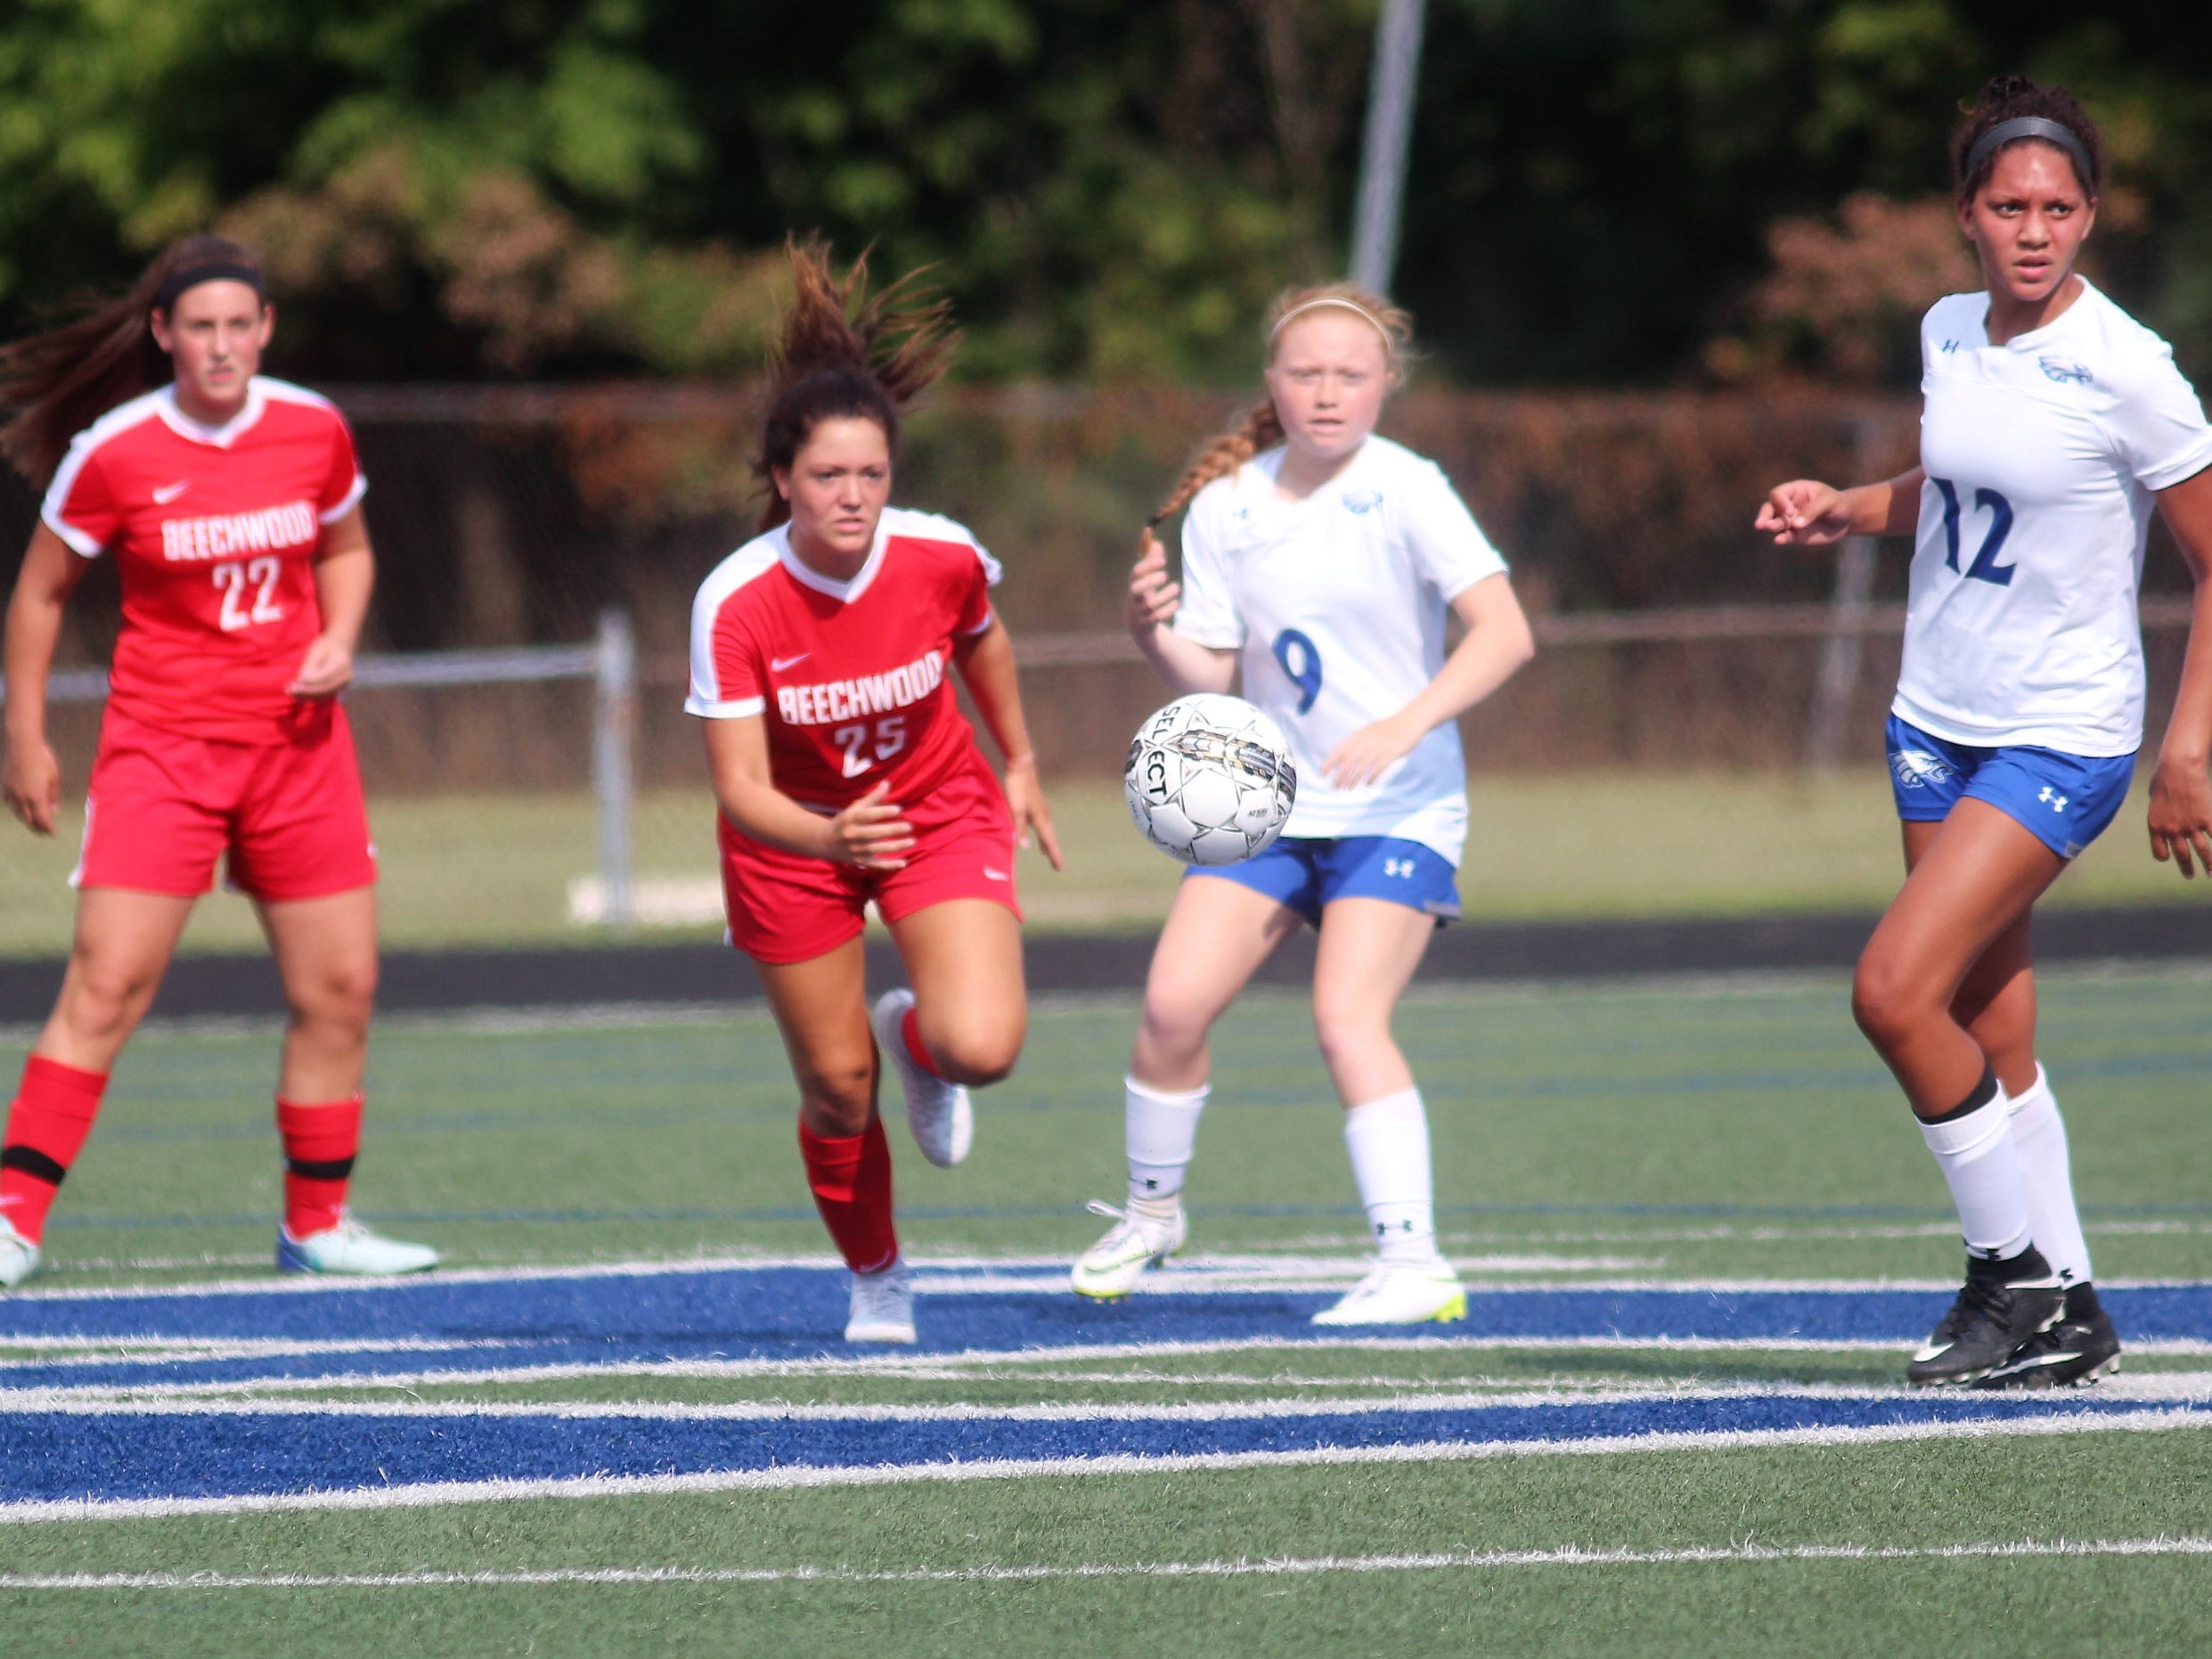 Players from both teams eye the ball as Beechwood plays Scott in girls Soccerama scrimmage Aug. 10, 2018 at Tower Park, Fort Thomas.